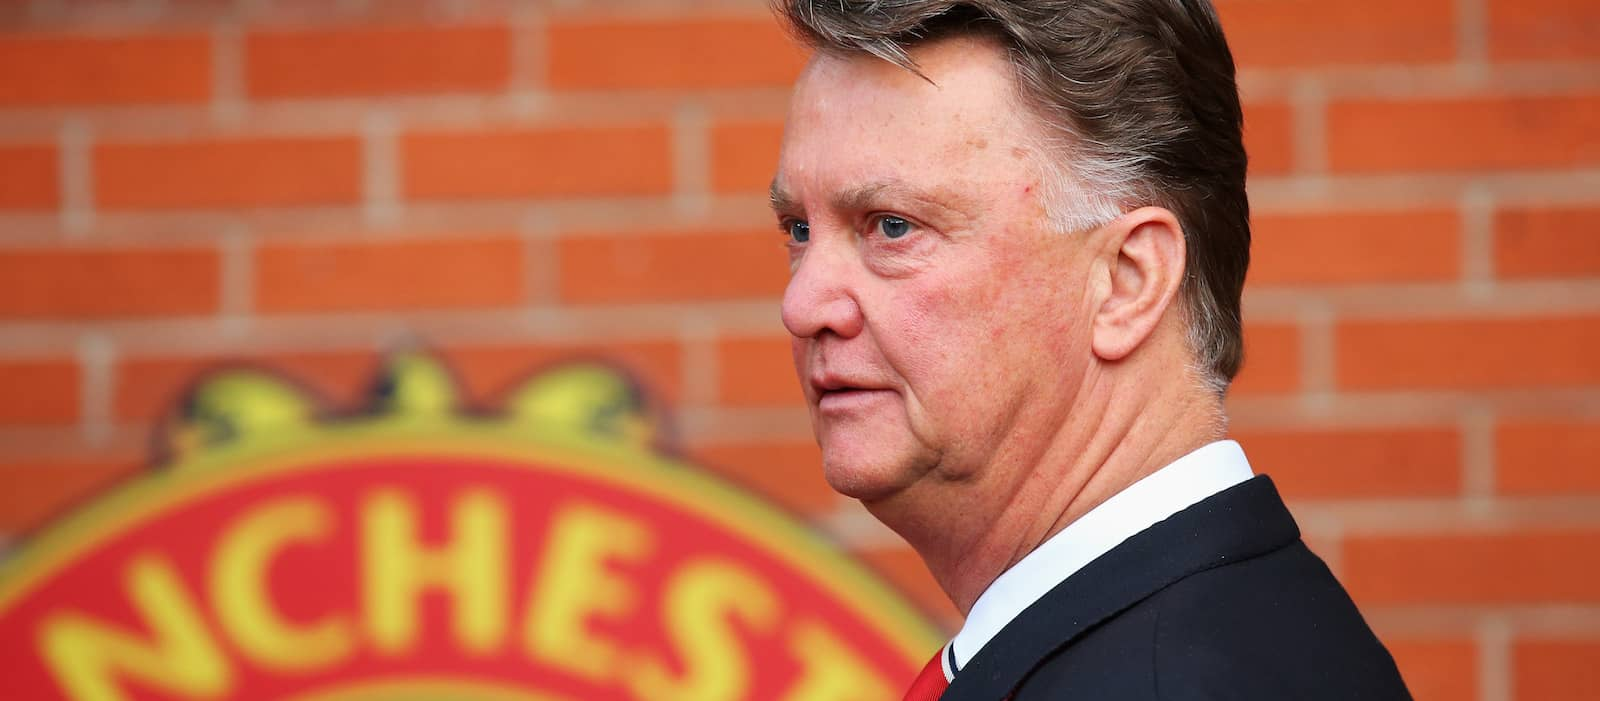 Louis van Gaal: Jose Mourinho plays boring football at Manchester United compared to me